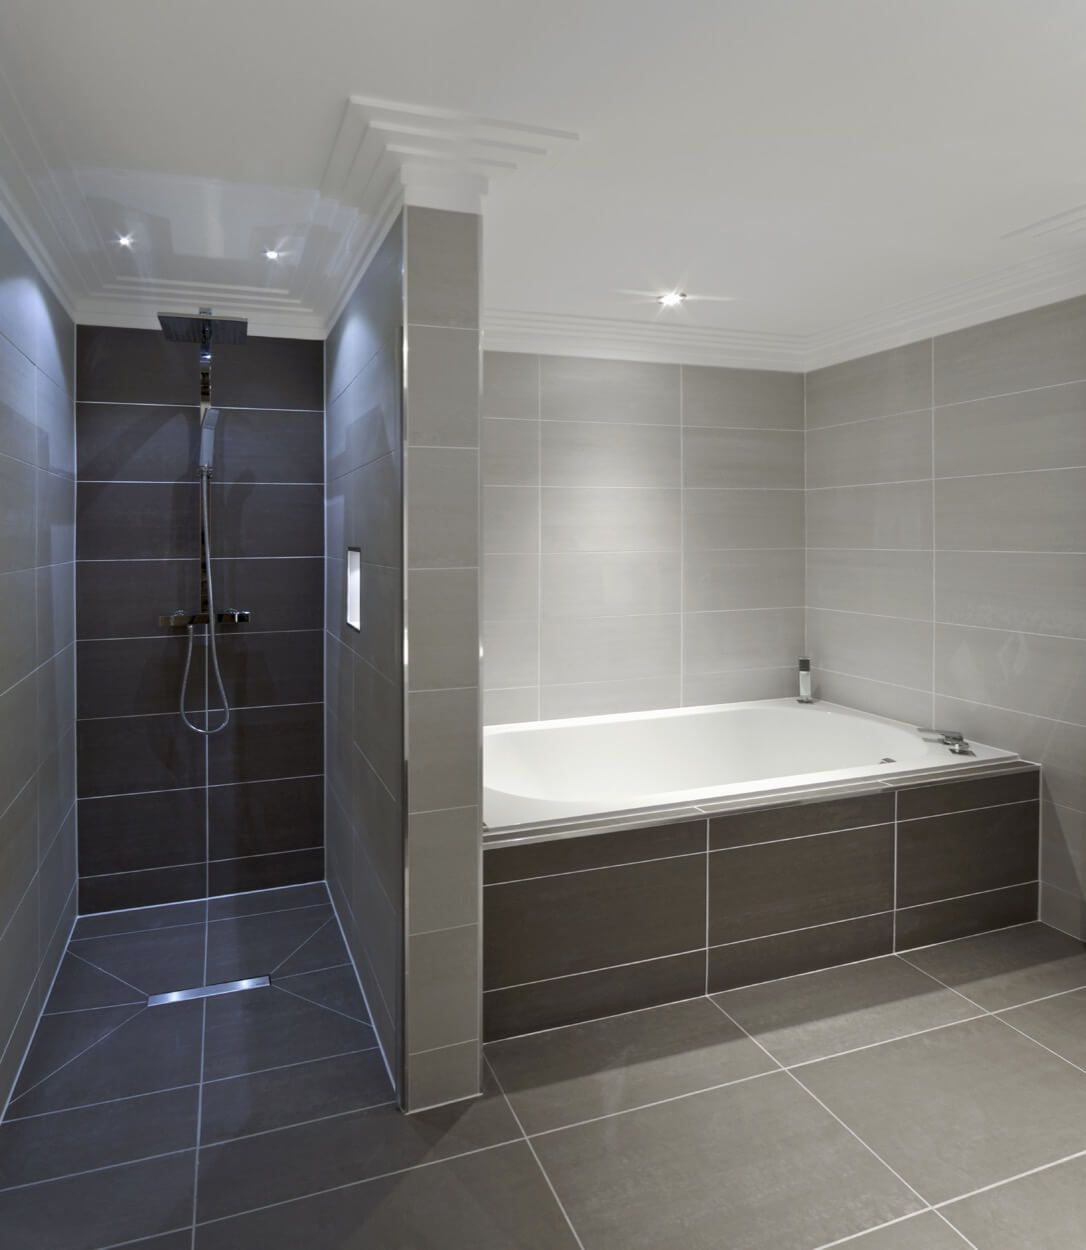 Separate Shower And Tub With Coordinating Gray Tile Bathroom Ideas Pinterest Badkamer